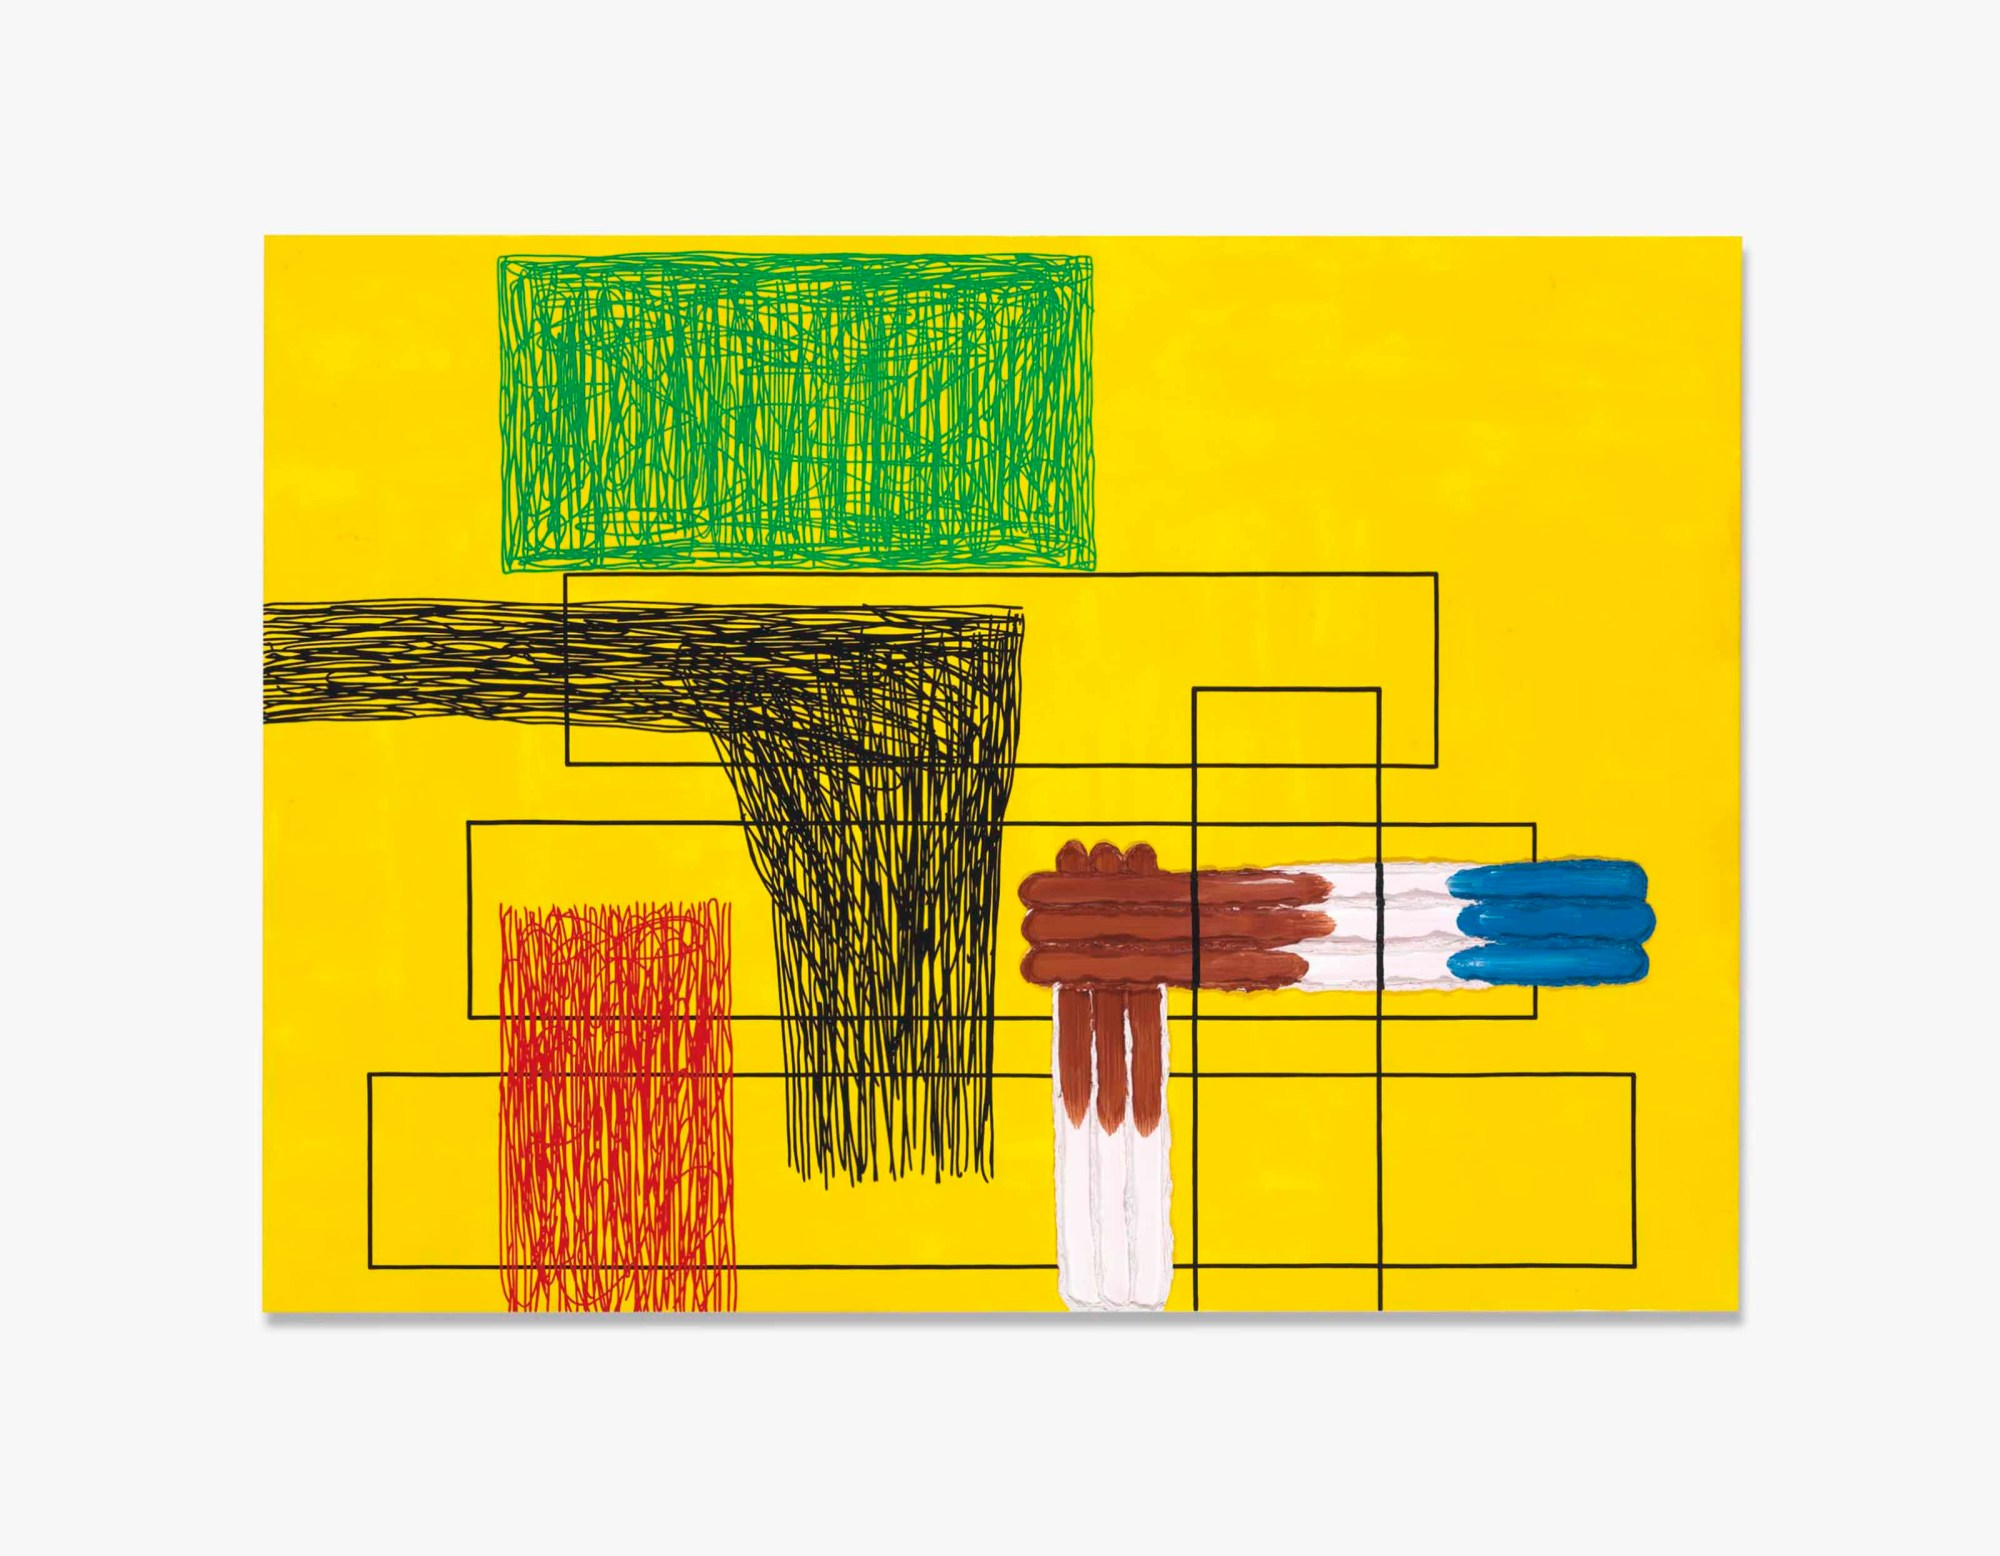 hight resolution of jonathan lasker b 1948 explanation of ice to a summer insect insect diorama ice insect diagram